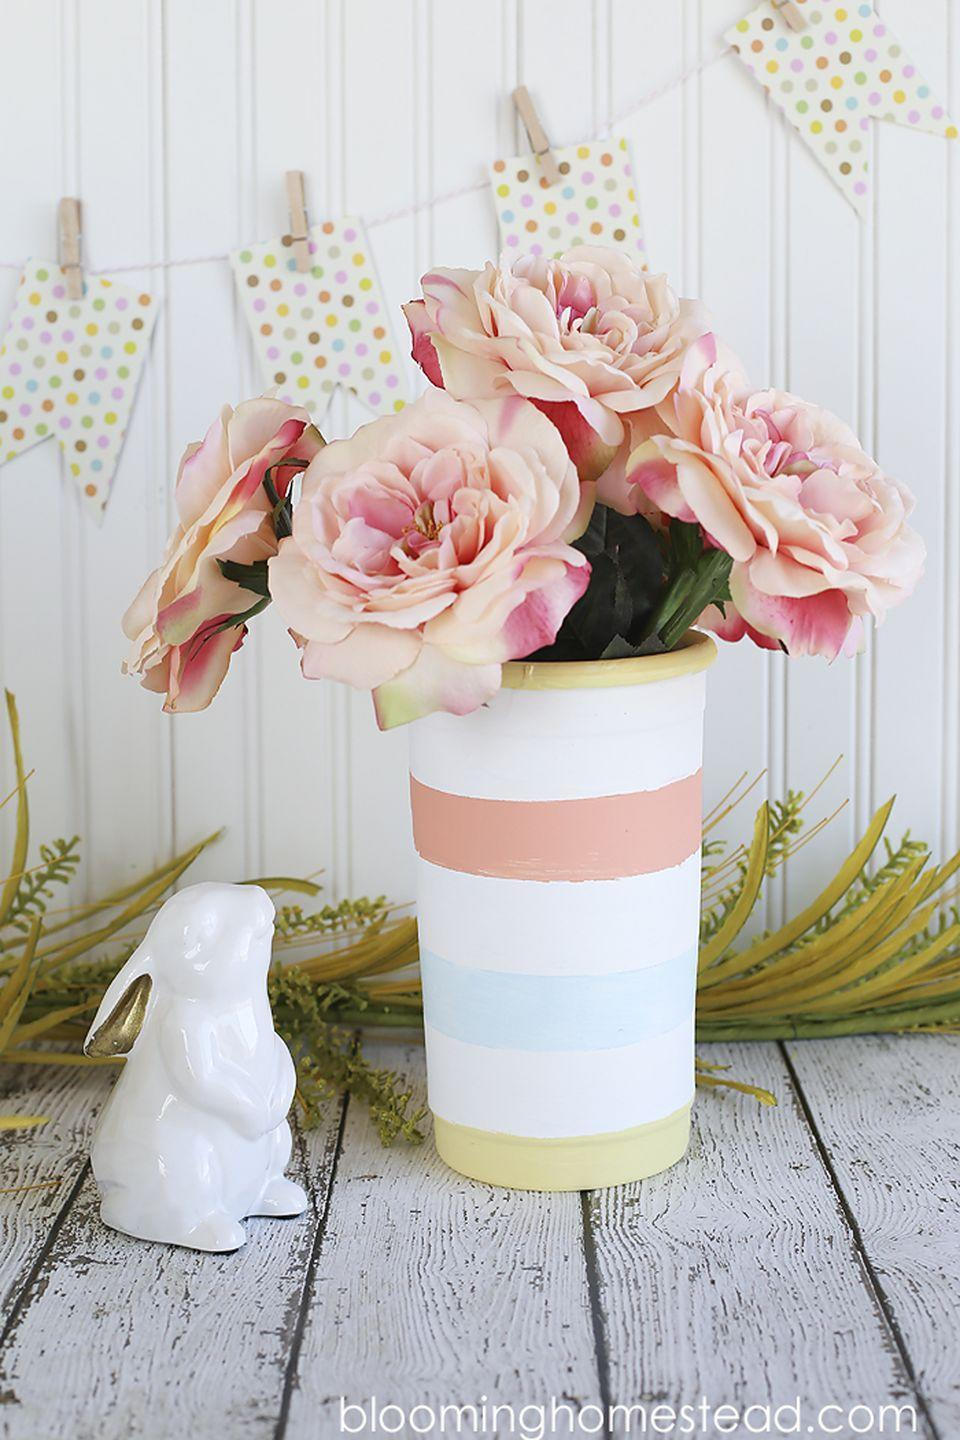 "<p>Kids can apply painter's tape in any design they want to make a pretty painted vase for Mom.</p><p><strong>Get the tutorial at <a href=""http://www.bloominghomestead.com/2015/05/easy-striped-vase.html"" rel=""nofollow noopener"" target=""_blank"" data-ylk=""slk:Blooming Homestead"" class=""link rapid-noclick-resp"">Blooming Homestead</a>.</strong></p><p><strong><a class=""link rapid-noclick-resp"" href=""https://go.redirectingat.com?id=74968X1596630&url=https%3A%2F%2Fwww.walmart.com%2Fip%2FPennington-4-in-Terra-Cotta-Clay-Pot%2F16794641&sref=https%3A%2F%2Fwww.countryliving.com%2Fdiy-crafts%2Fg4233%2Fmothers-day-crafts-kids%2F"" rel=""nofollow noopener"" target=""_blank"" data-ylk=""slk:SHOP TERRA COTTA POT"">SHOP TERRA COTTA POT</a></strong></p>"